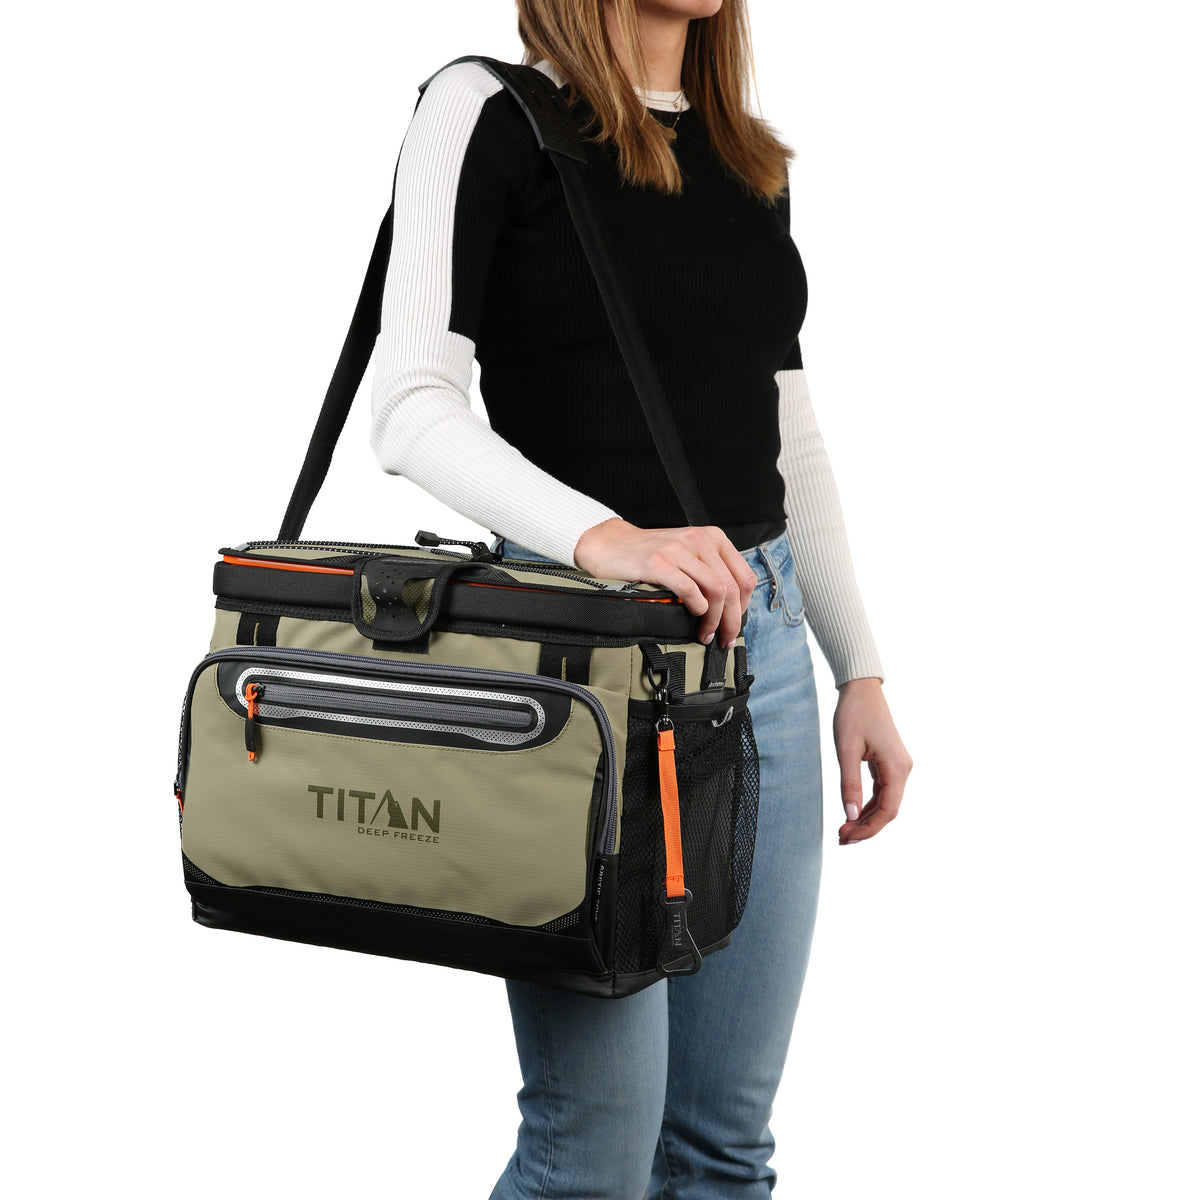 Titan Deep Freeze® 30 Can Zipperless™ Cooler - Moss - Model carrying cooler